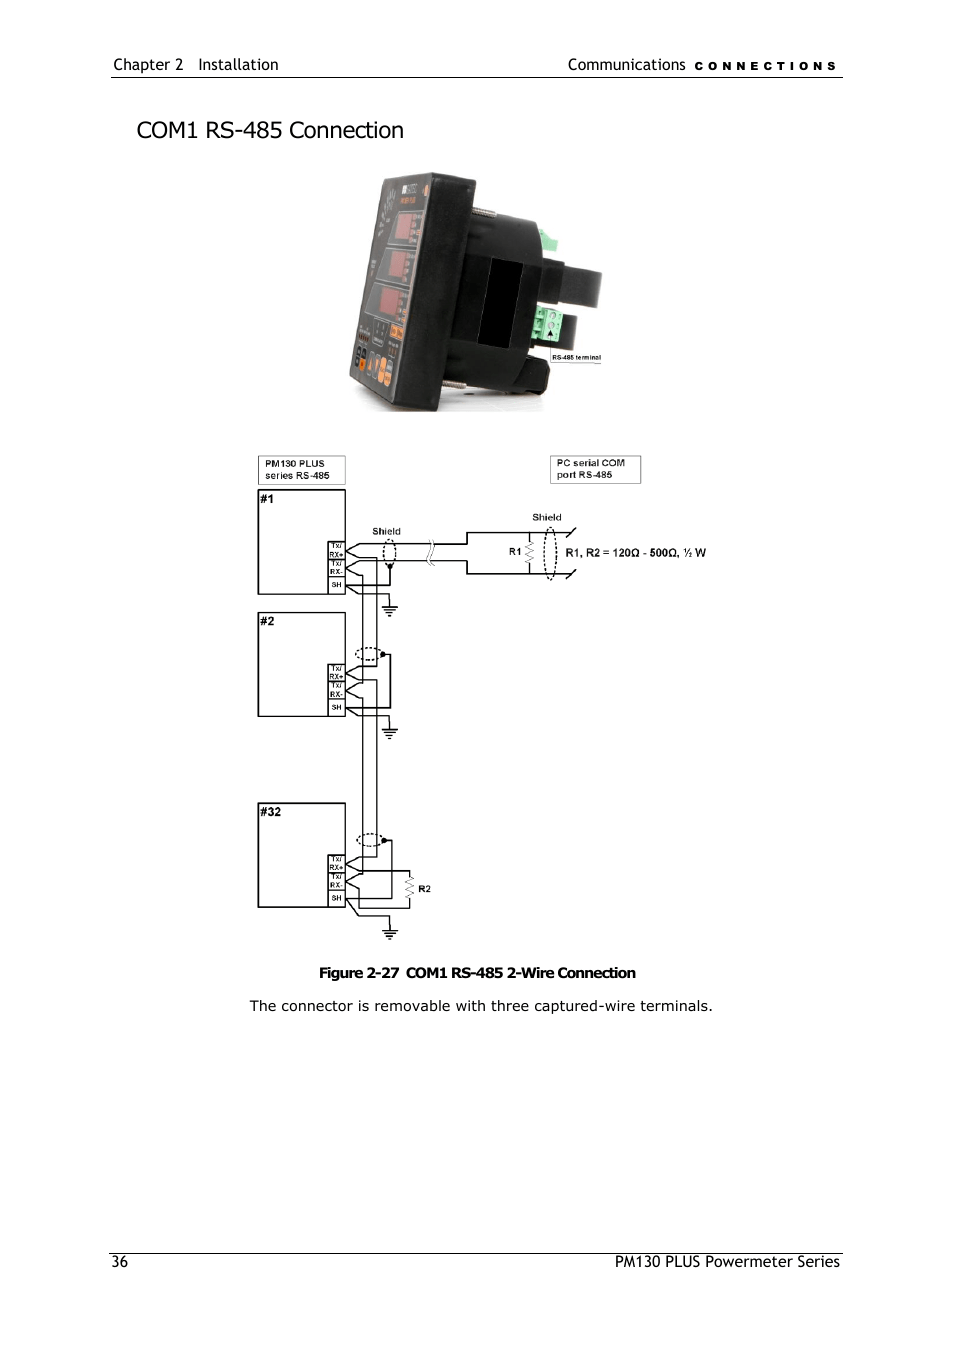 medium resolution of rs 485 2wire wiring diagram com1 rs 485 connection satec pm130 plus manual user manual page 36